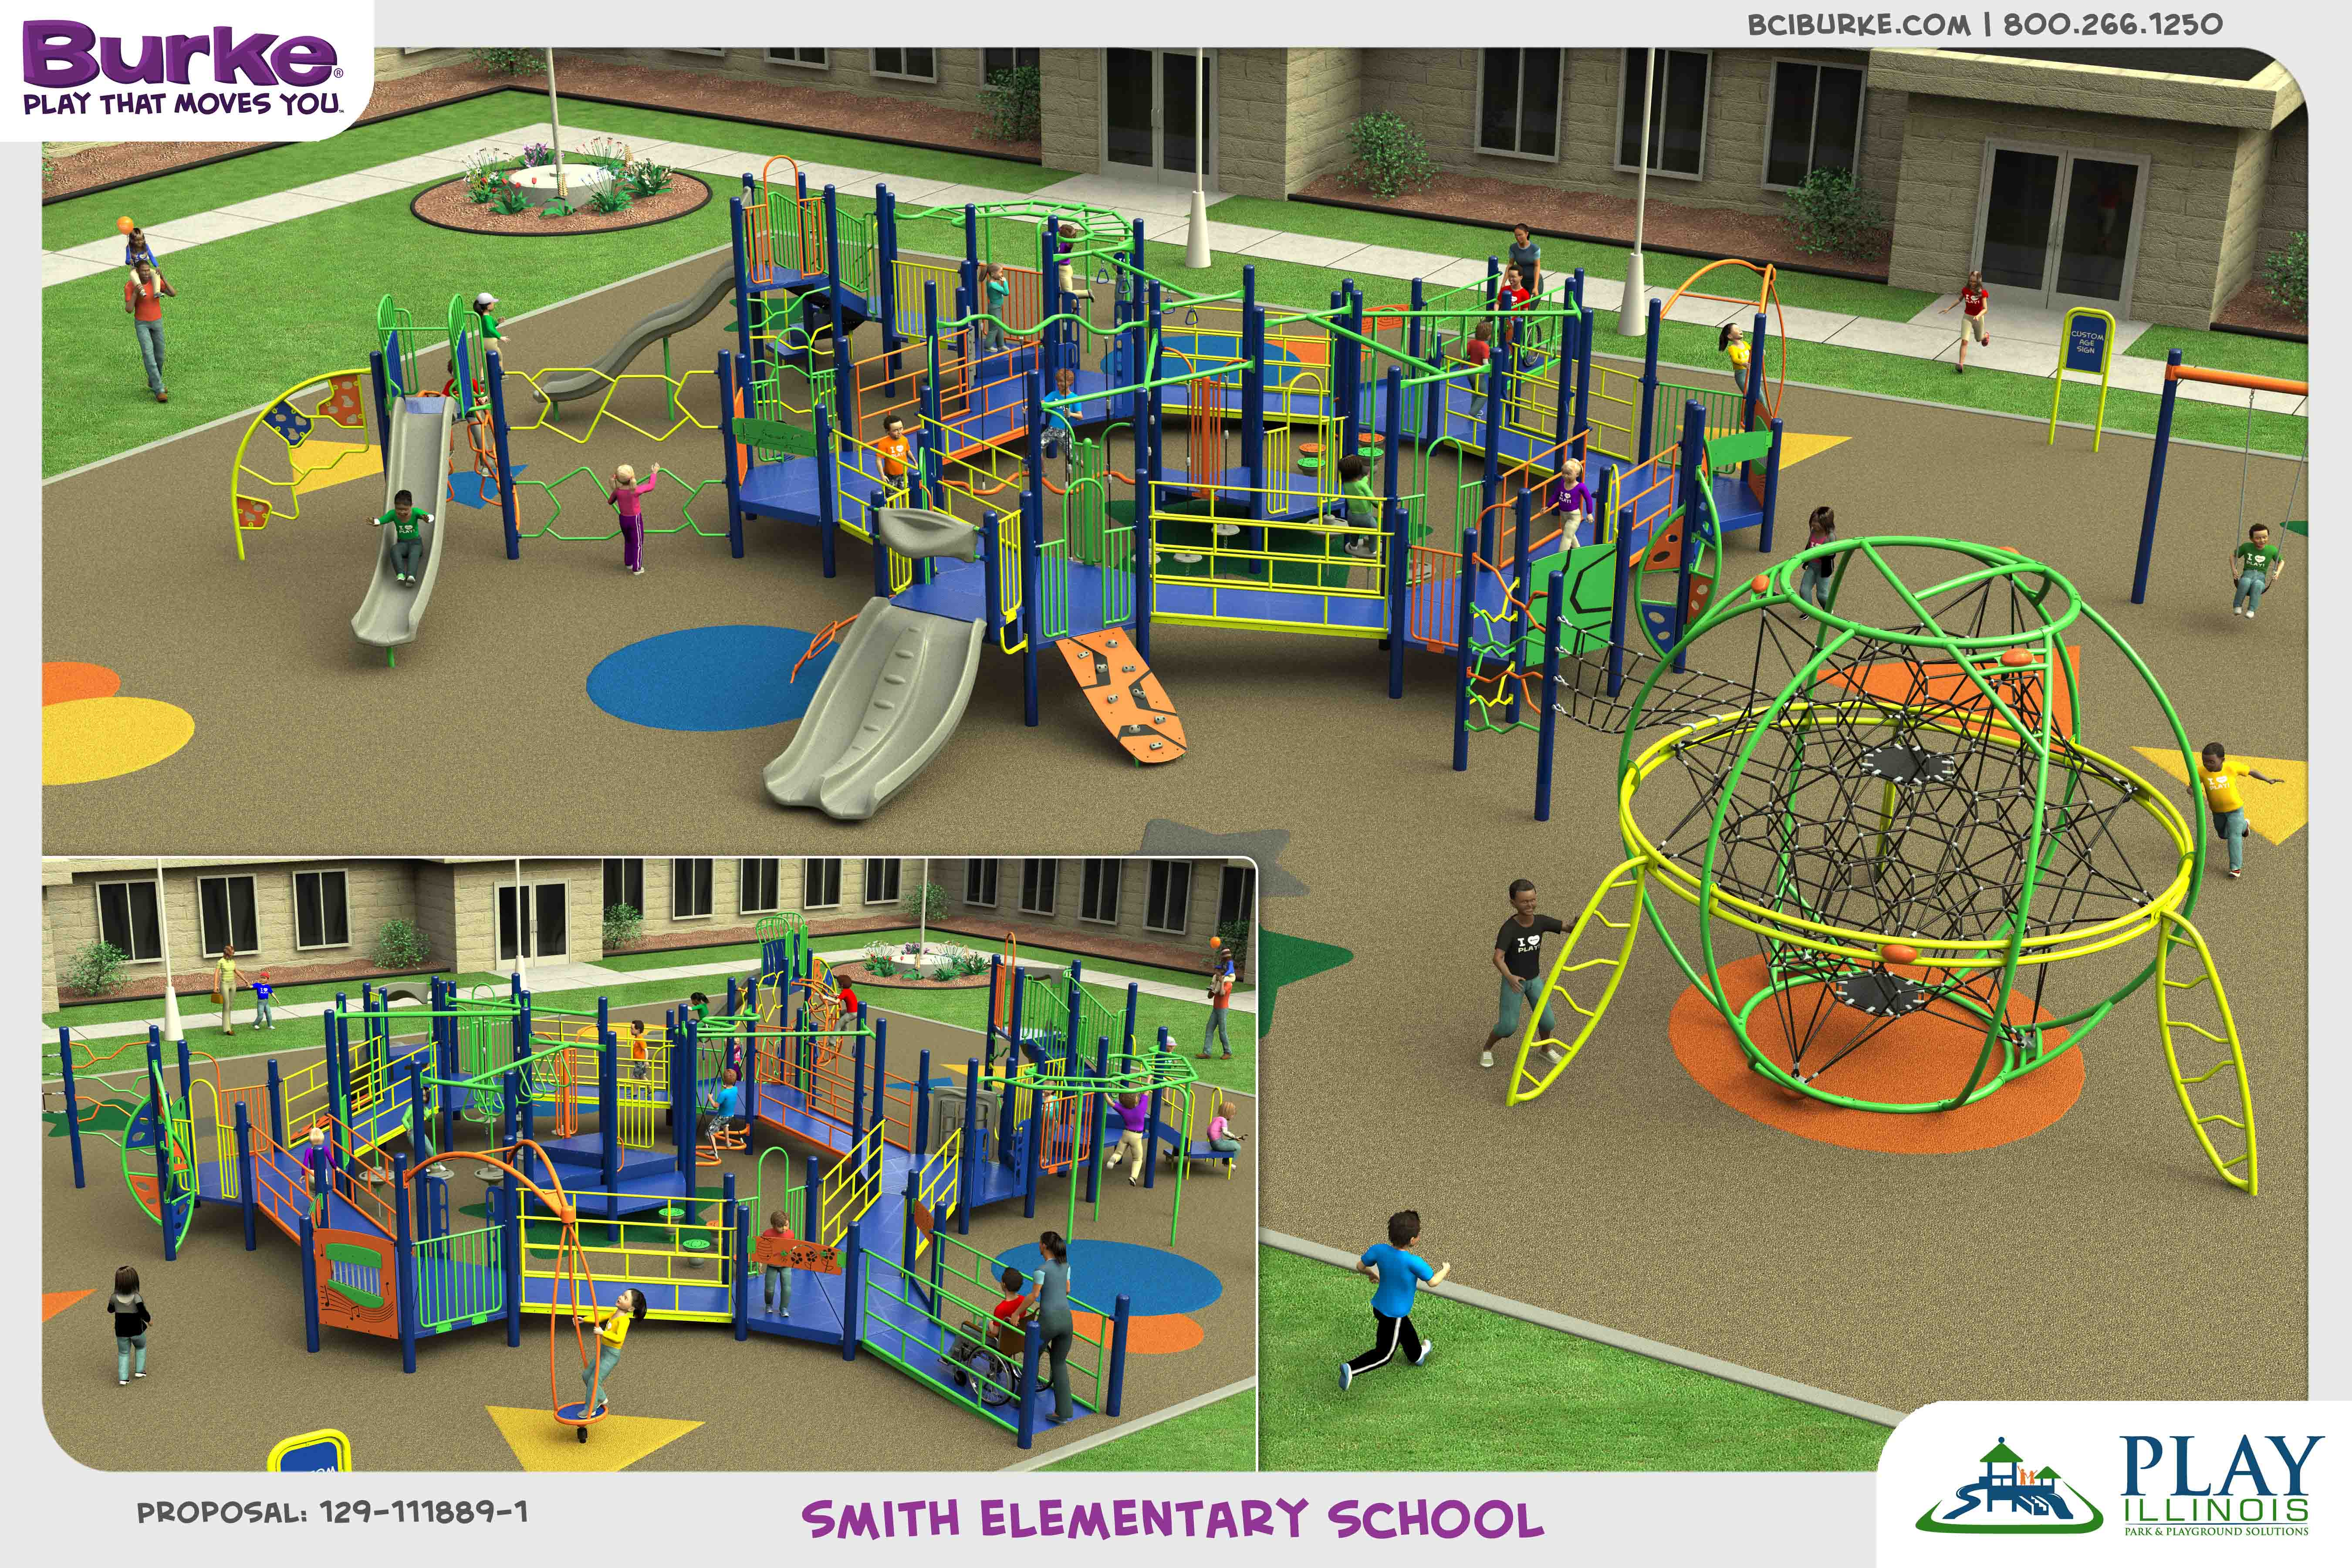 129-111889-1B-copy_MC_SmithElementary dream build play experience accessible playgrounds